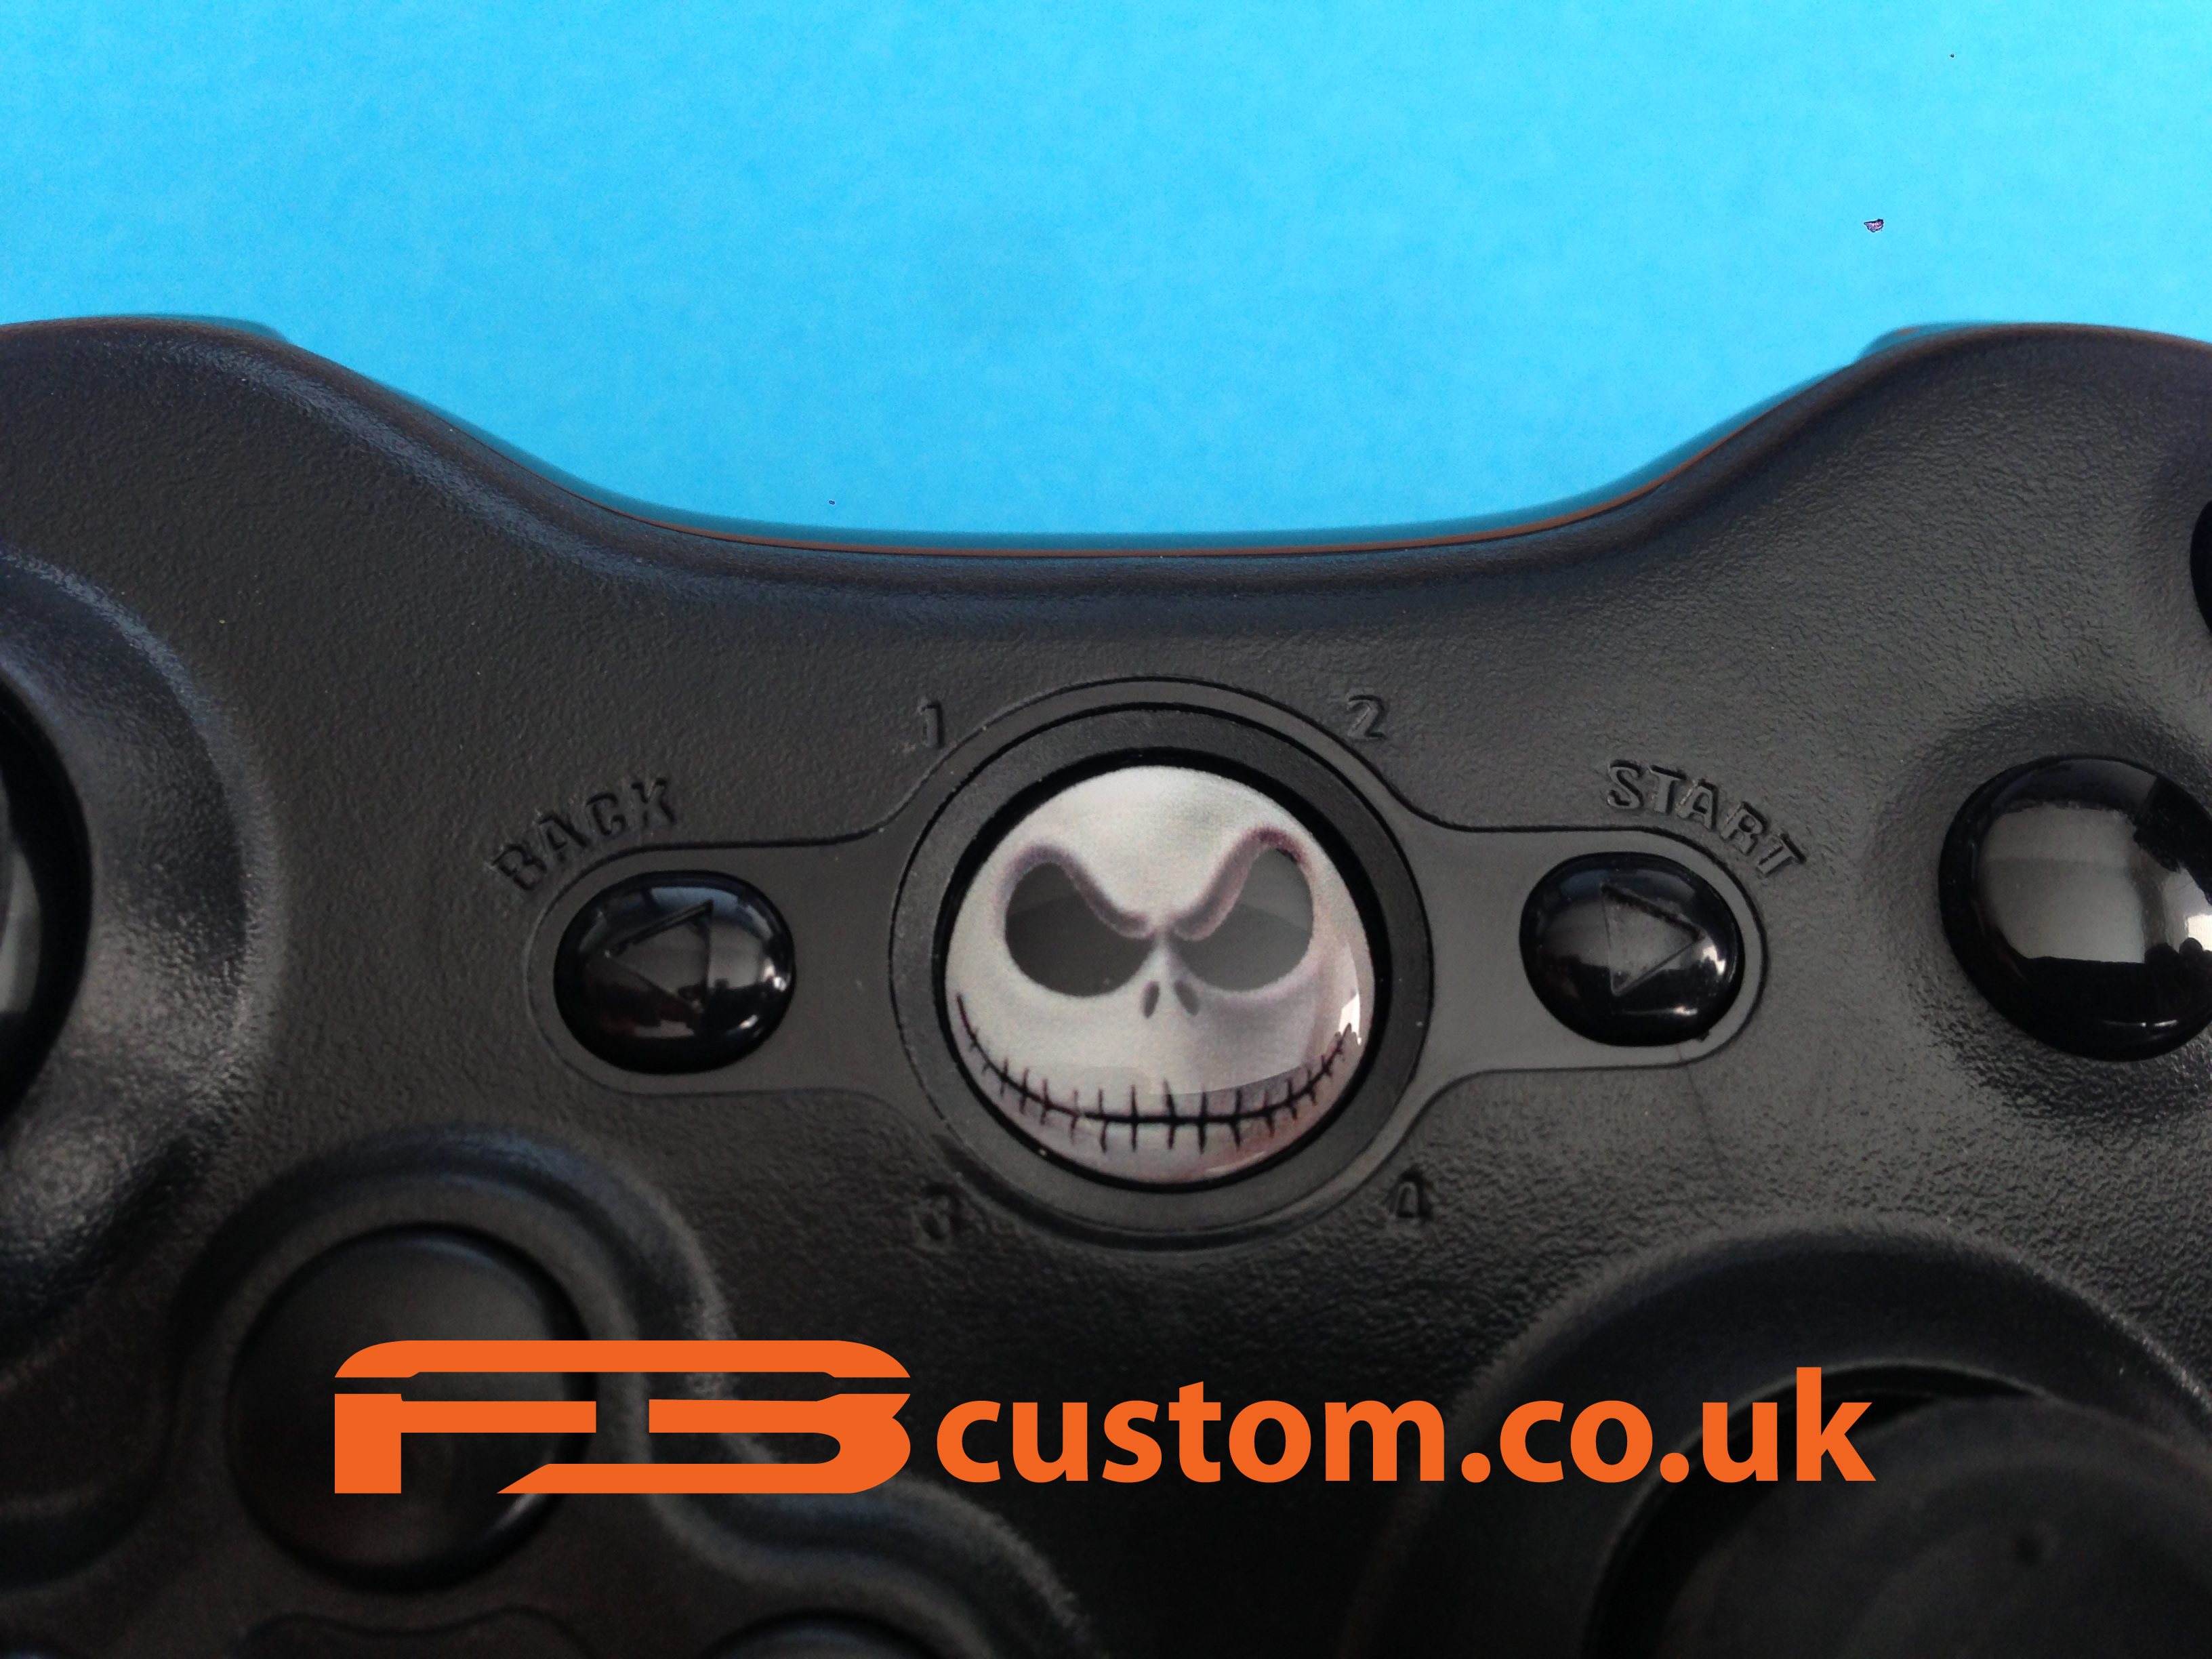 Custom XBOX 360 * Nightmare Before Christmas * Guide button F3custom ...